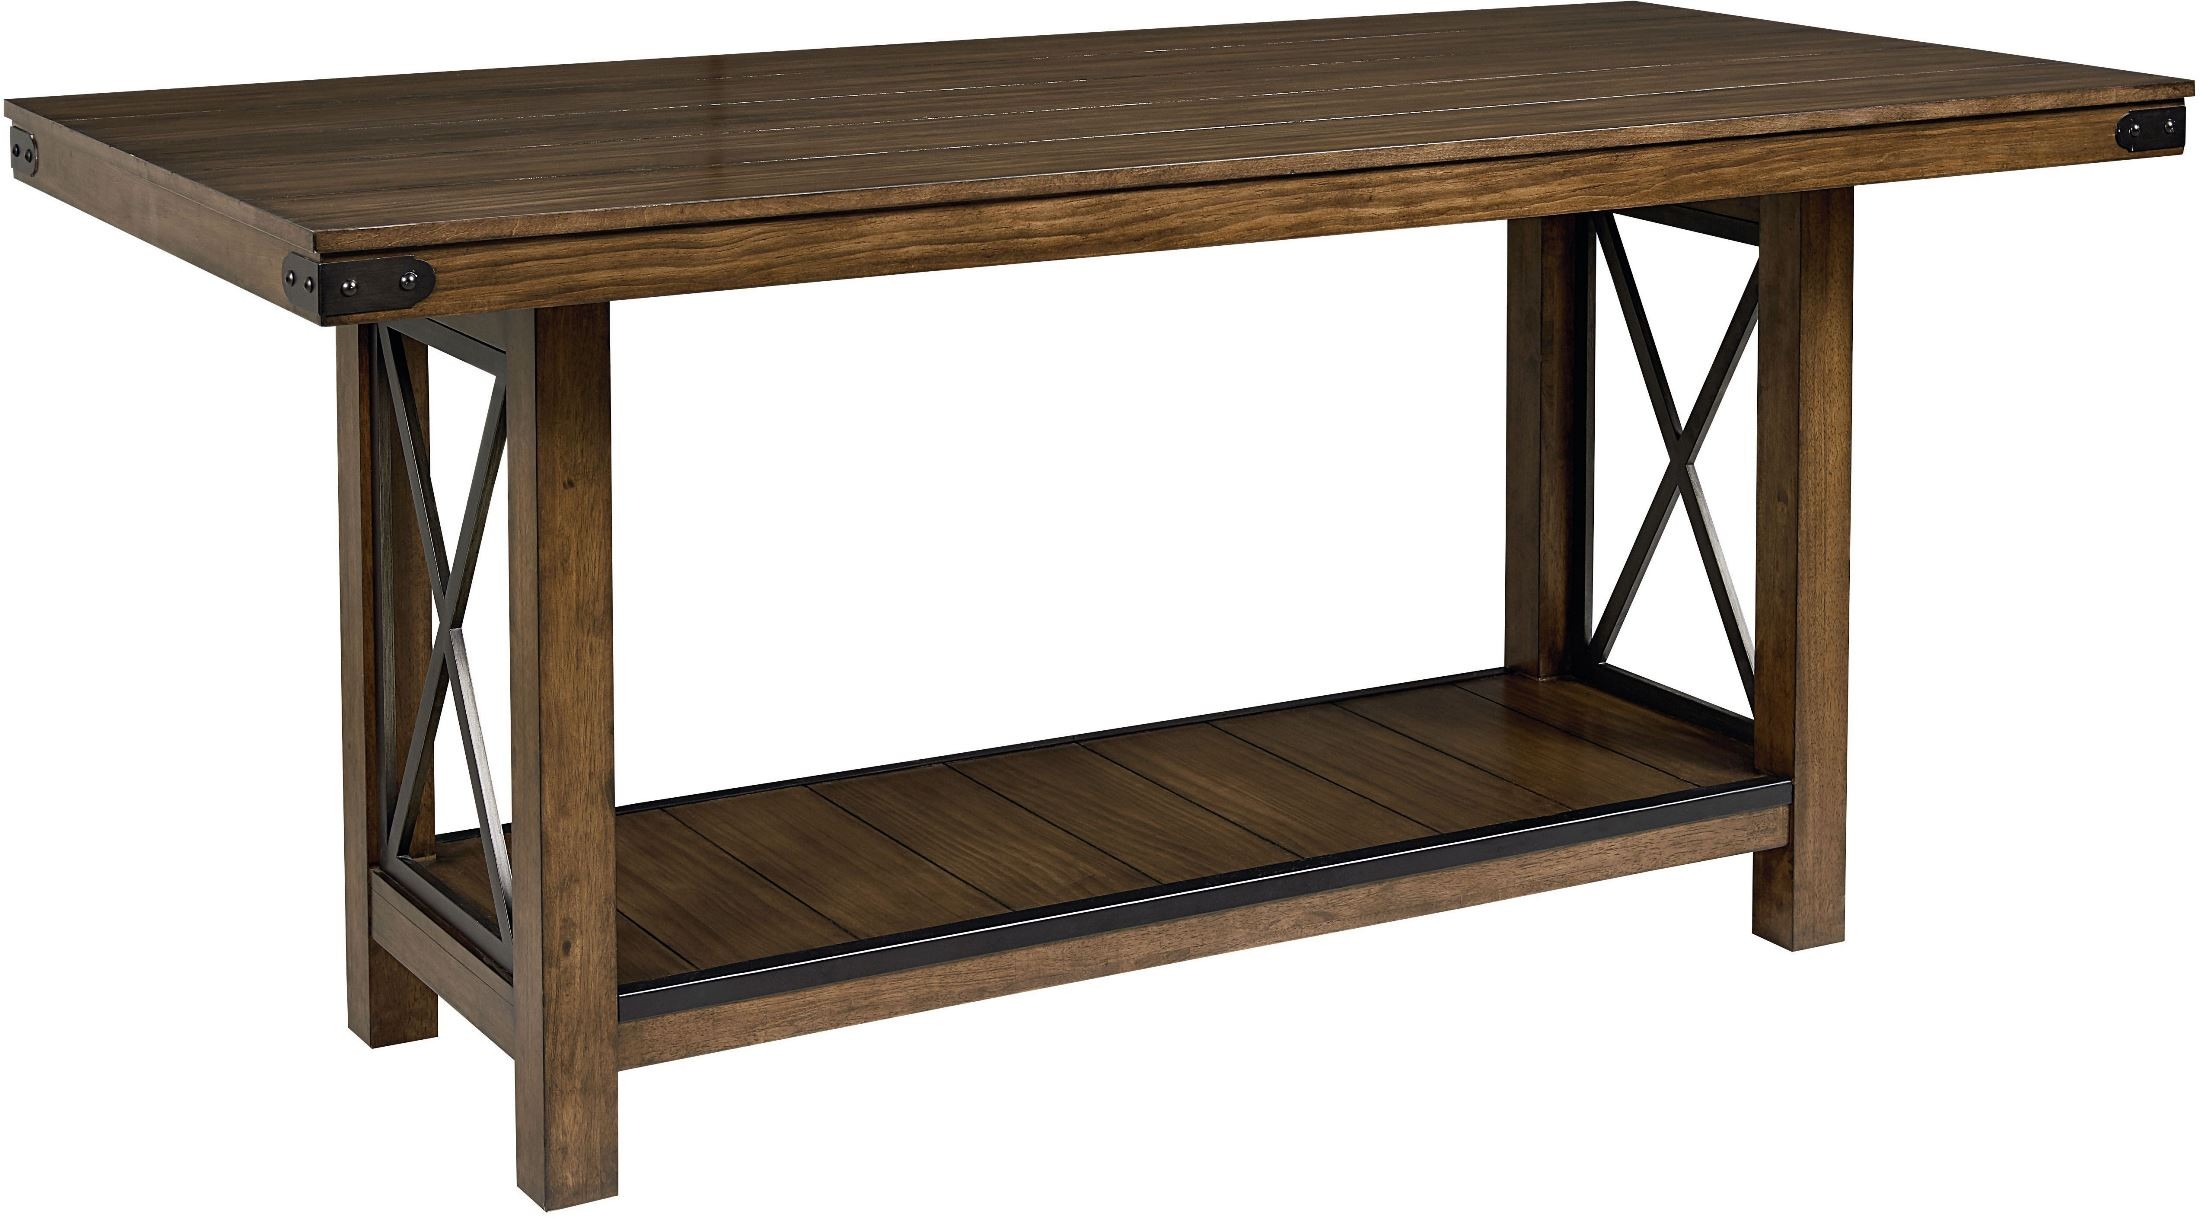 Benson Warm Brown Counter Height Trestle Dining Table from  : 11520benson11536cthttblsilo from colemanfurniture.com size 2200 x 1218 jpeg 305kB